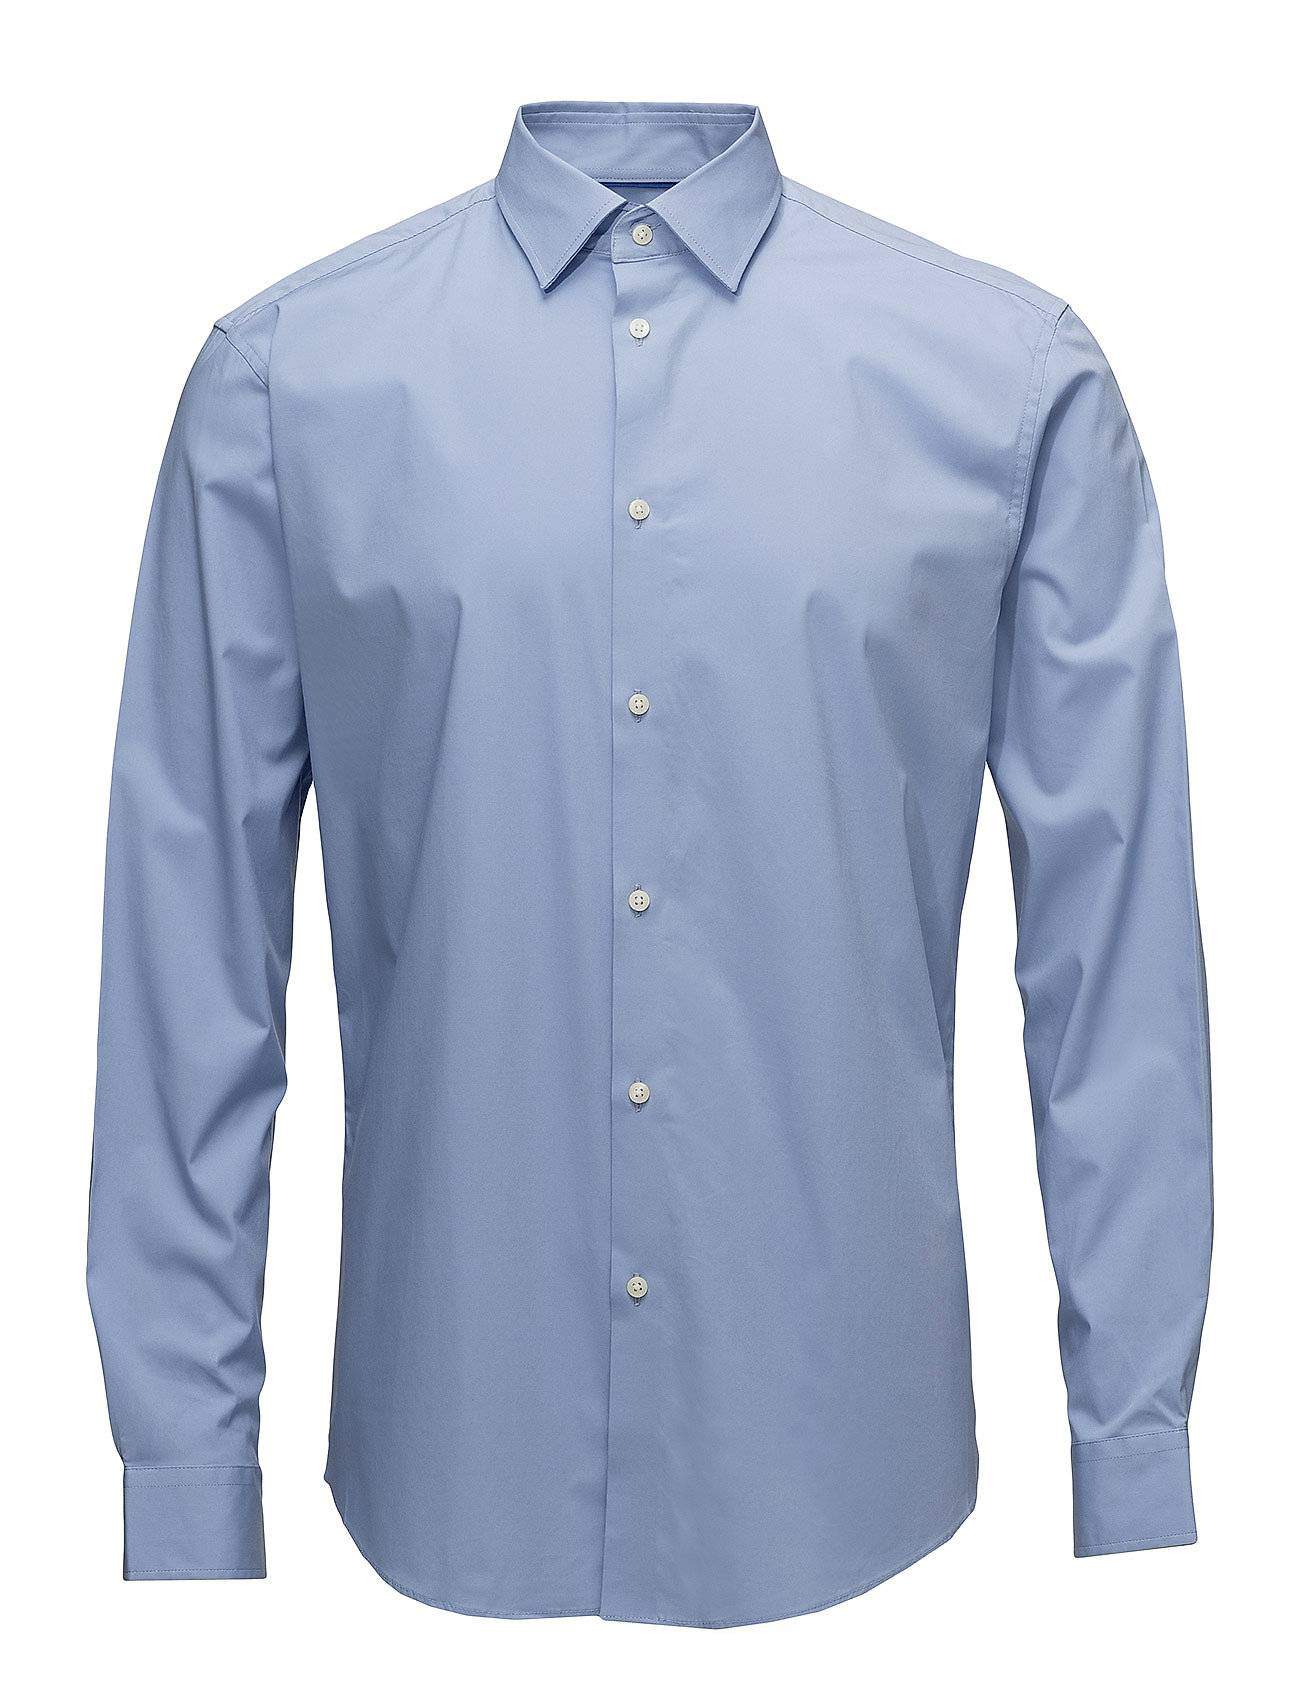 Esprit Collection Shirts Woven